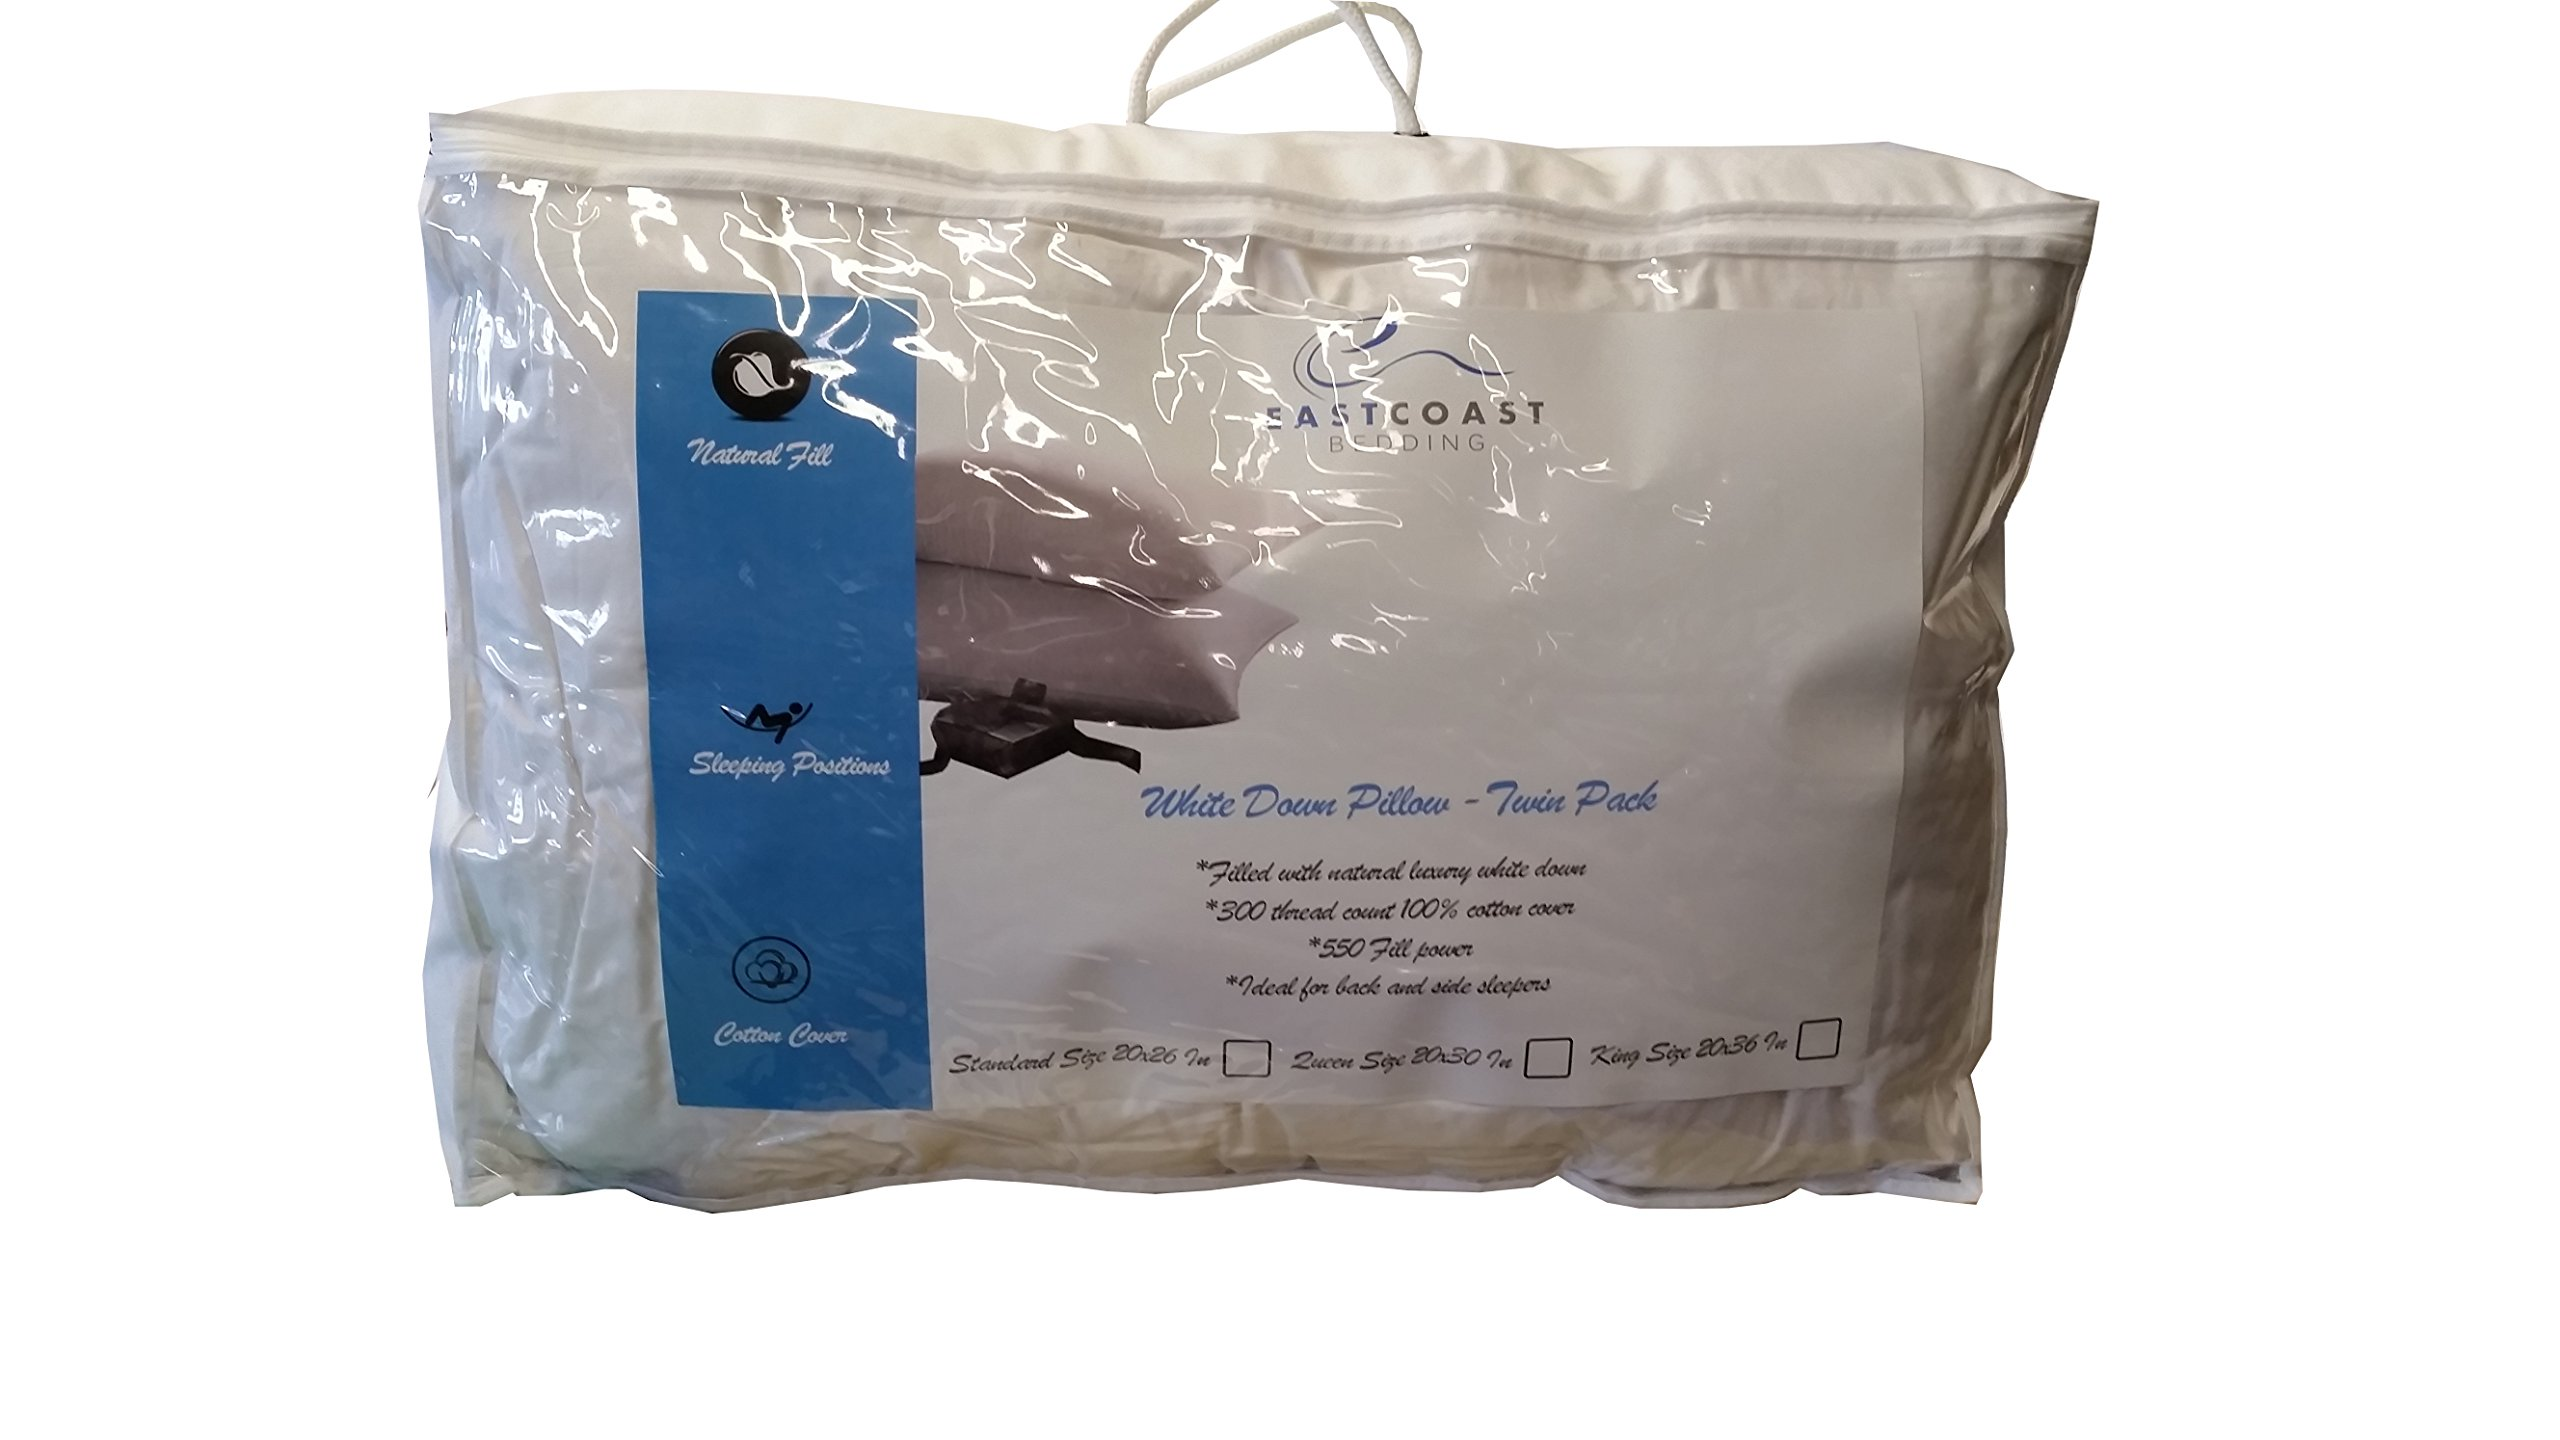 East coast bedding 100% White Down Pillow 100% Cotton Fabric 550 Fill Power - Set of 2 (Queen)